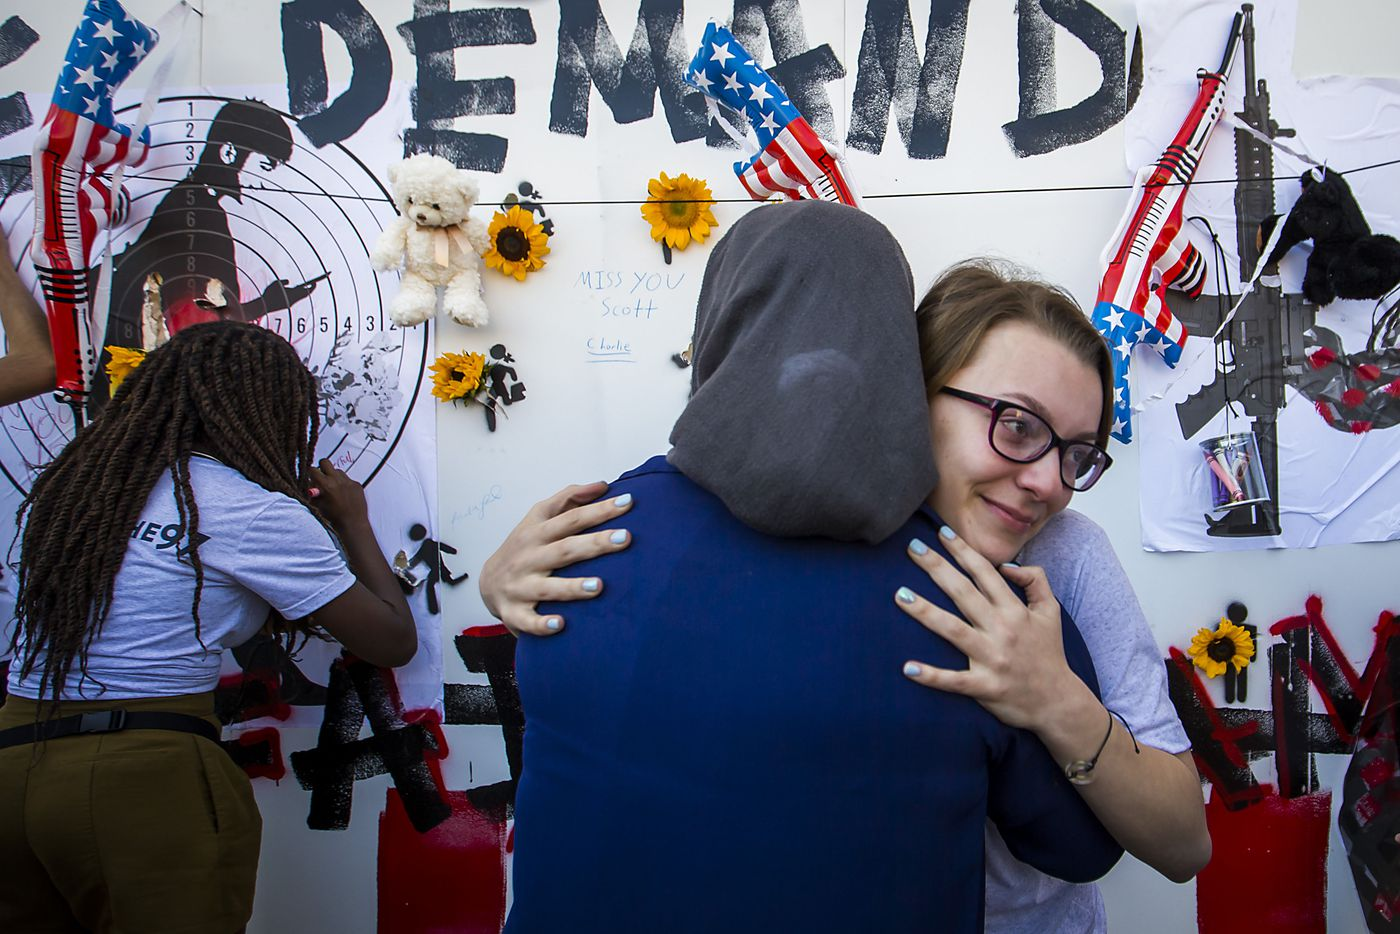 Sophie Conde, facing, hugs Waed Alhayek after Alhayek spoke during a gun control demonstration outside Dallas City Hall organized by StudentsMarch.org during the NRA Annual Meeting & Exhibits at the Kay Bailey Hutchison Convention Center on Saturday, May 5, 2018, in Dallas.